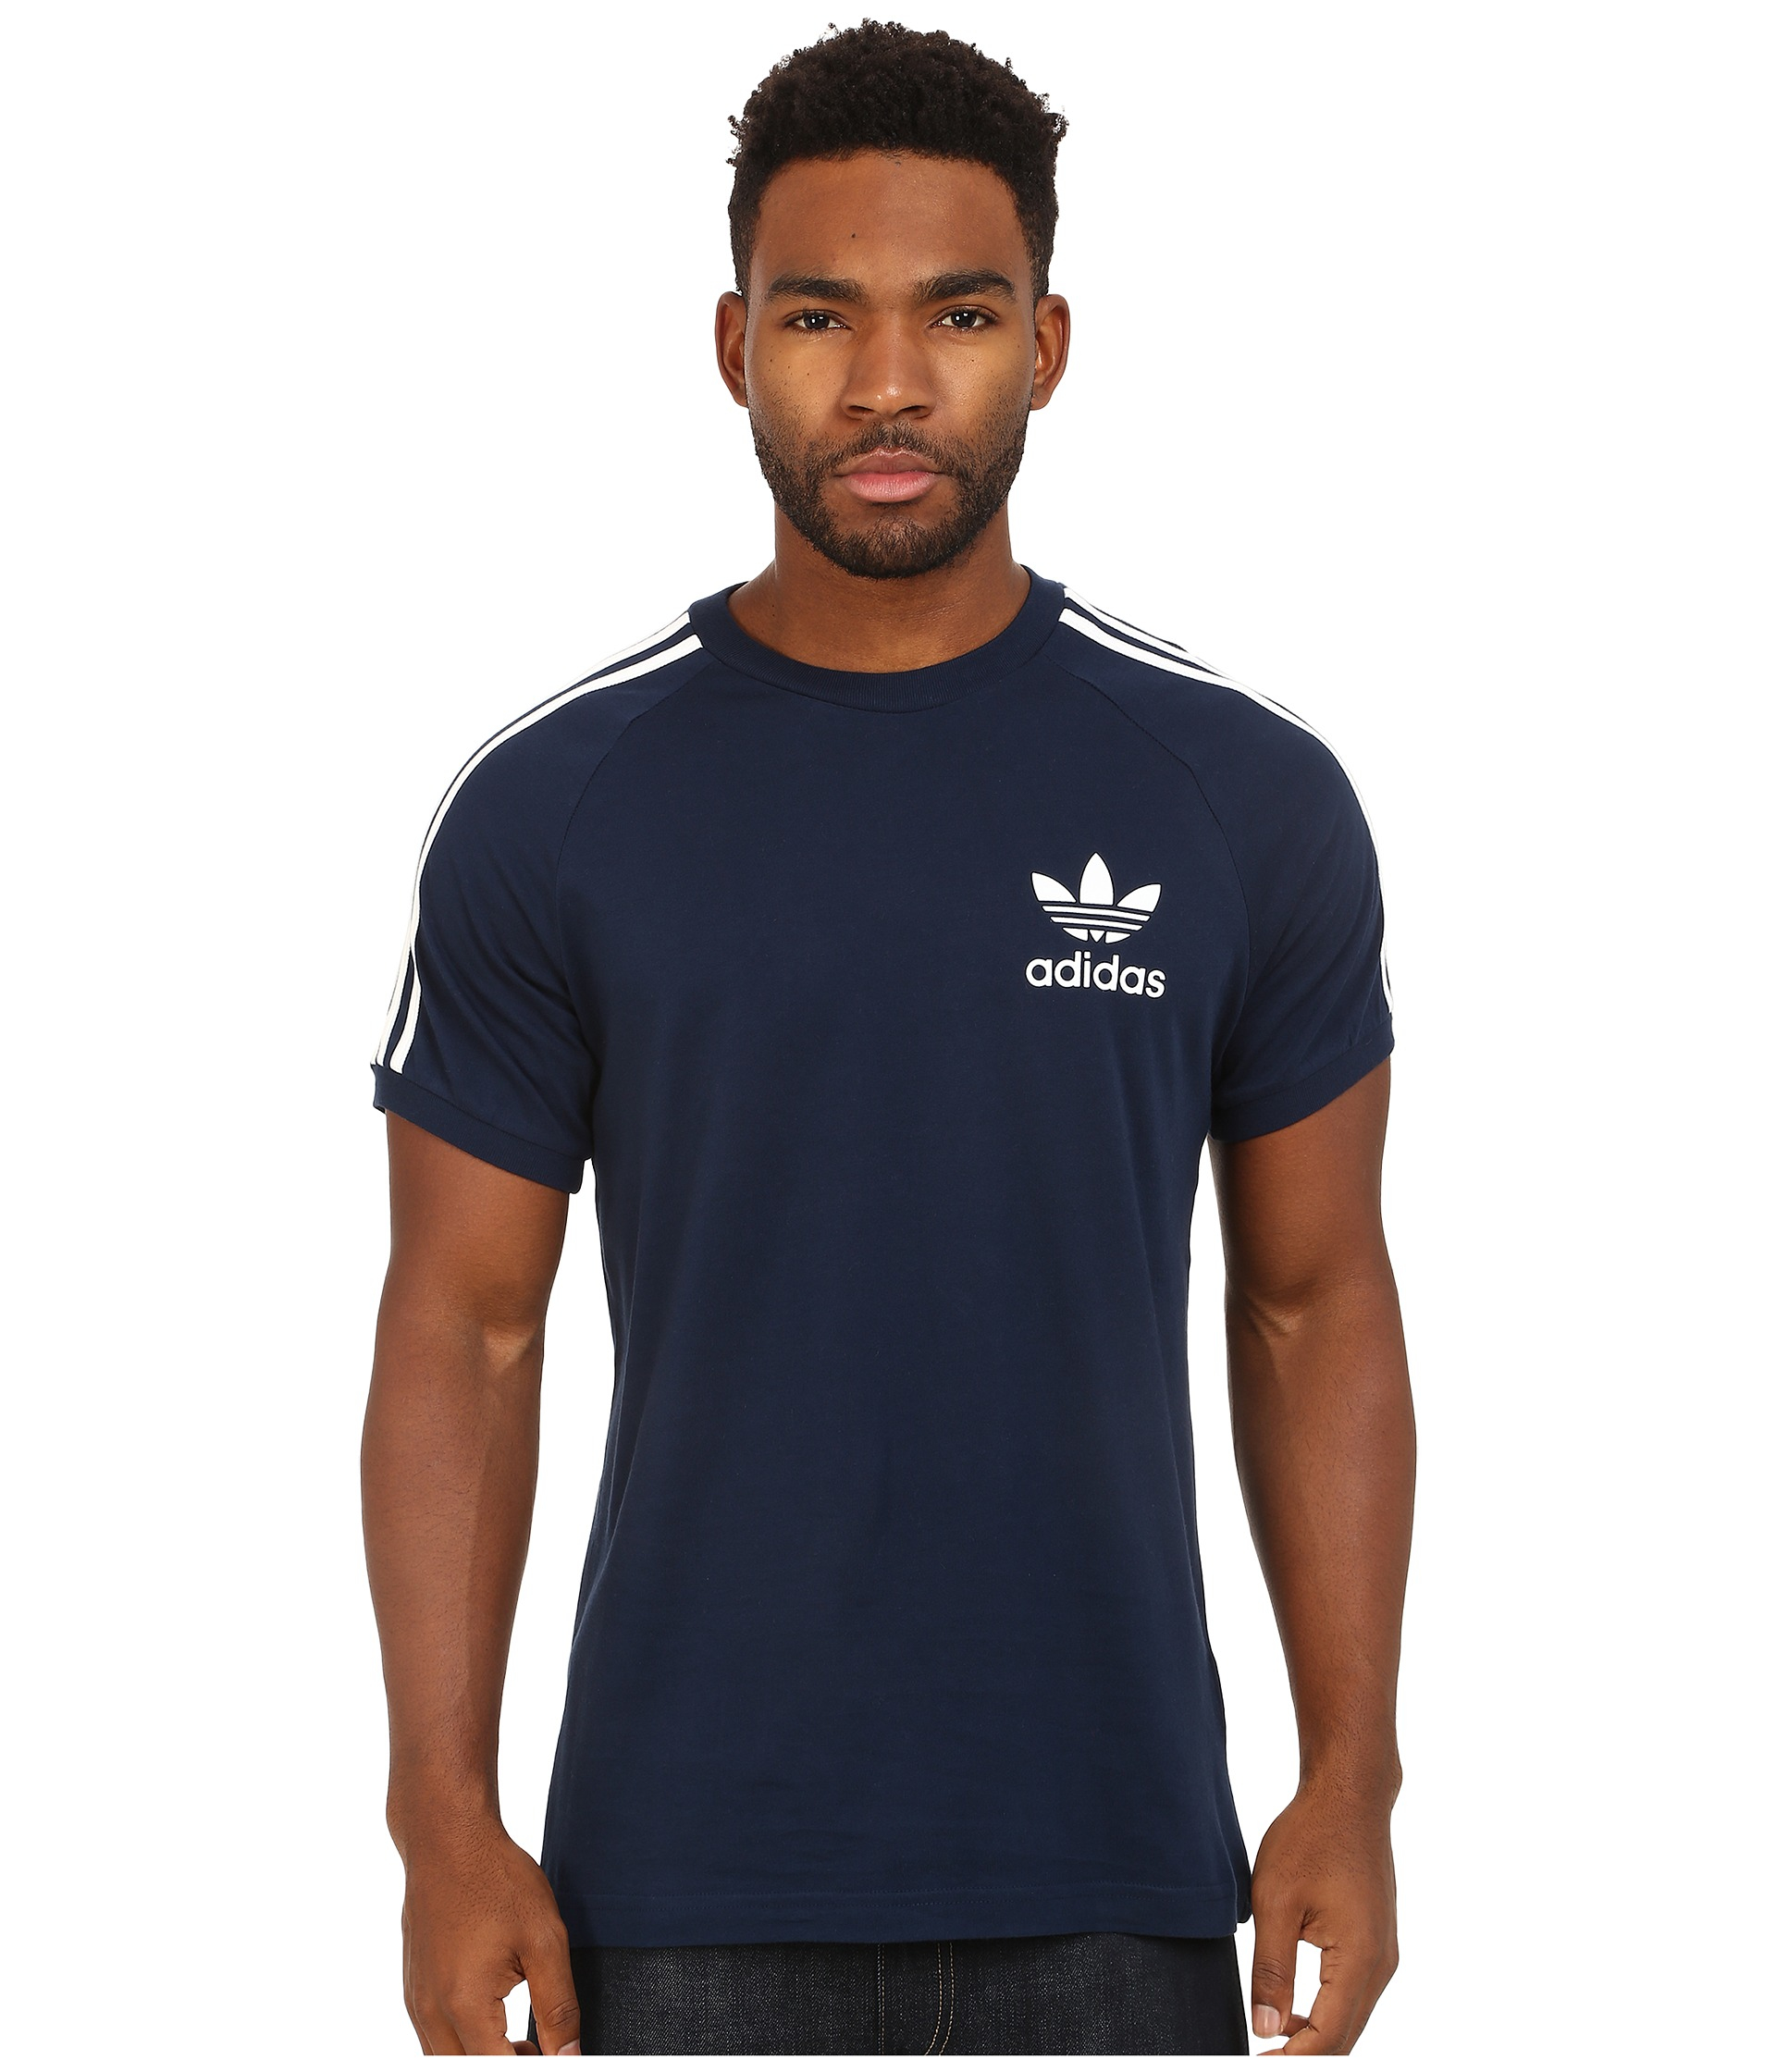 adidas originals sport essentials tee in blue for men. Black Bedroom Furniture Sets. Home Design Ideas